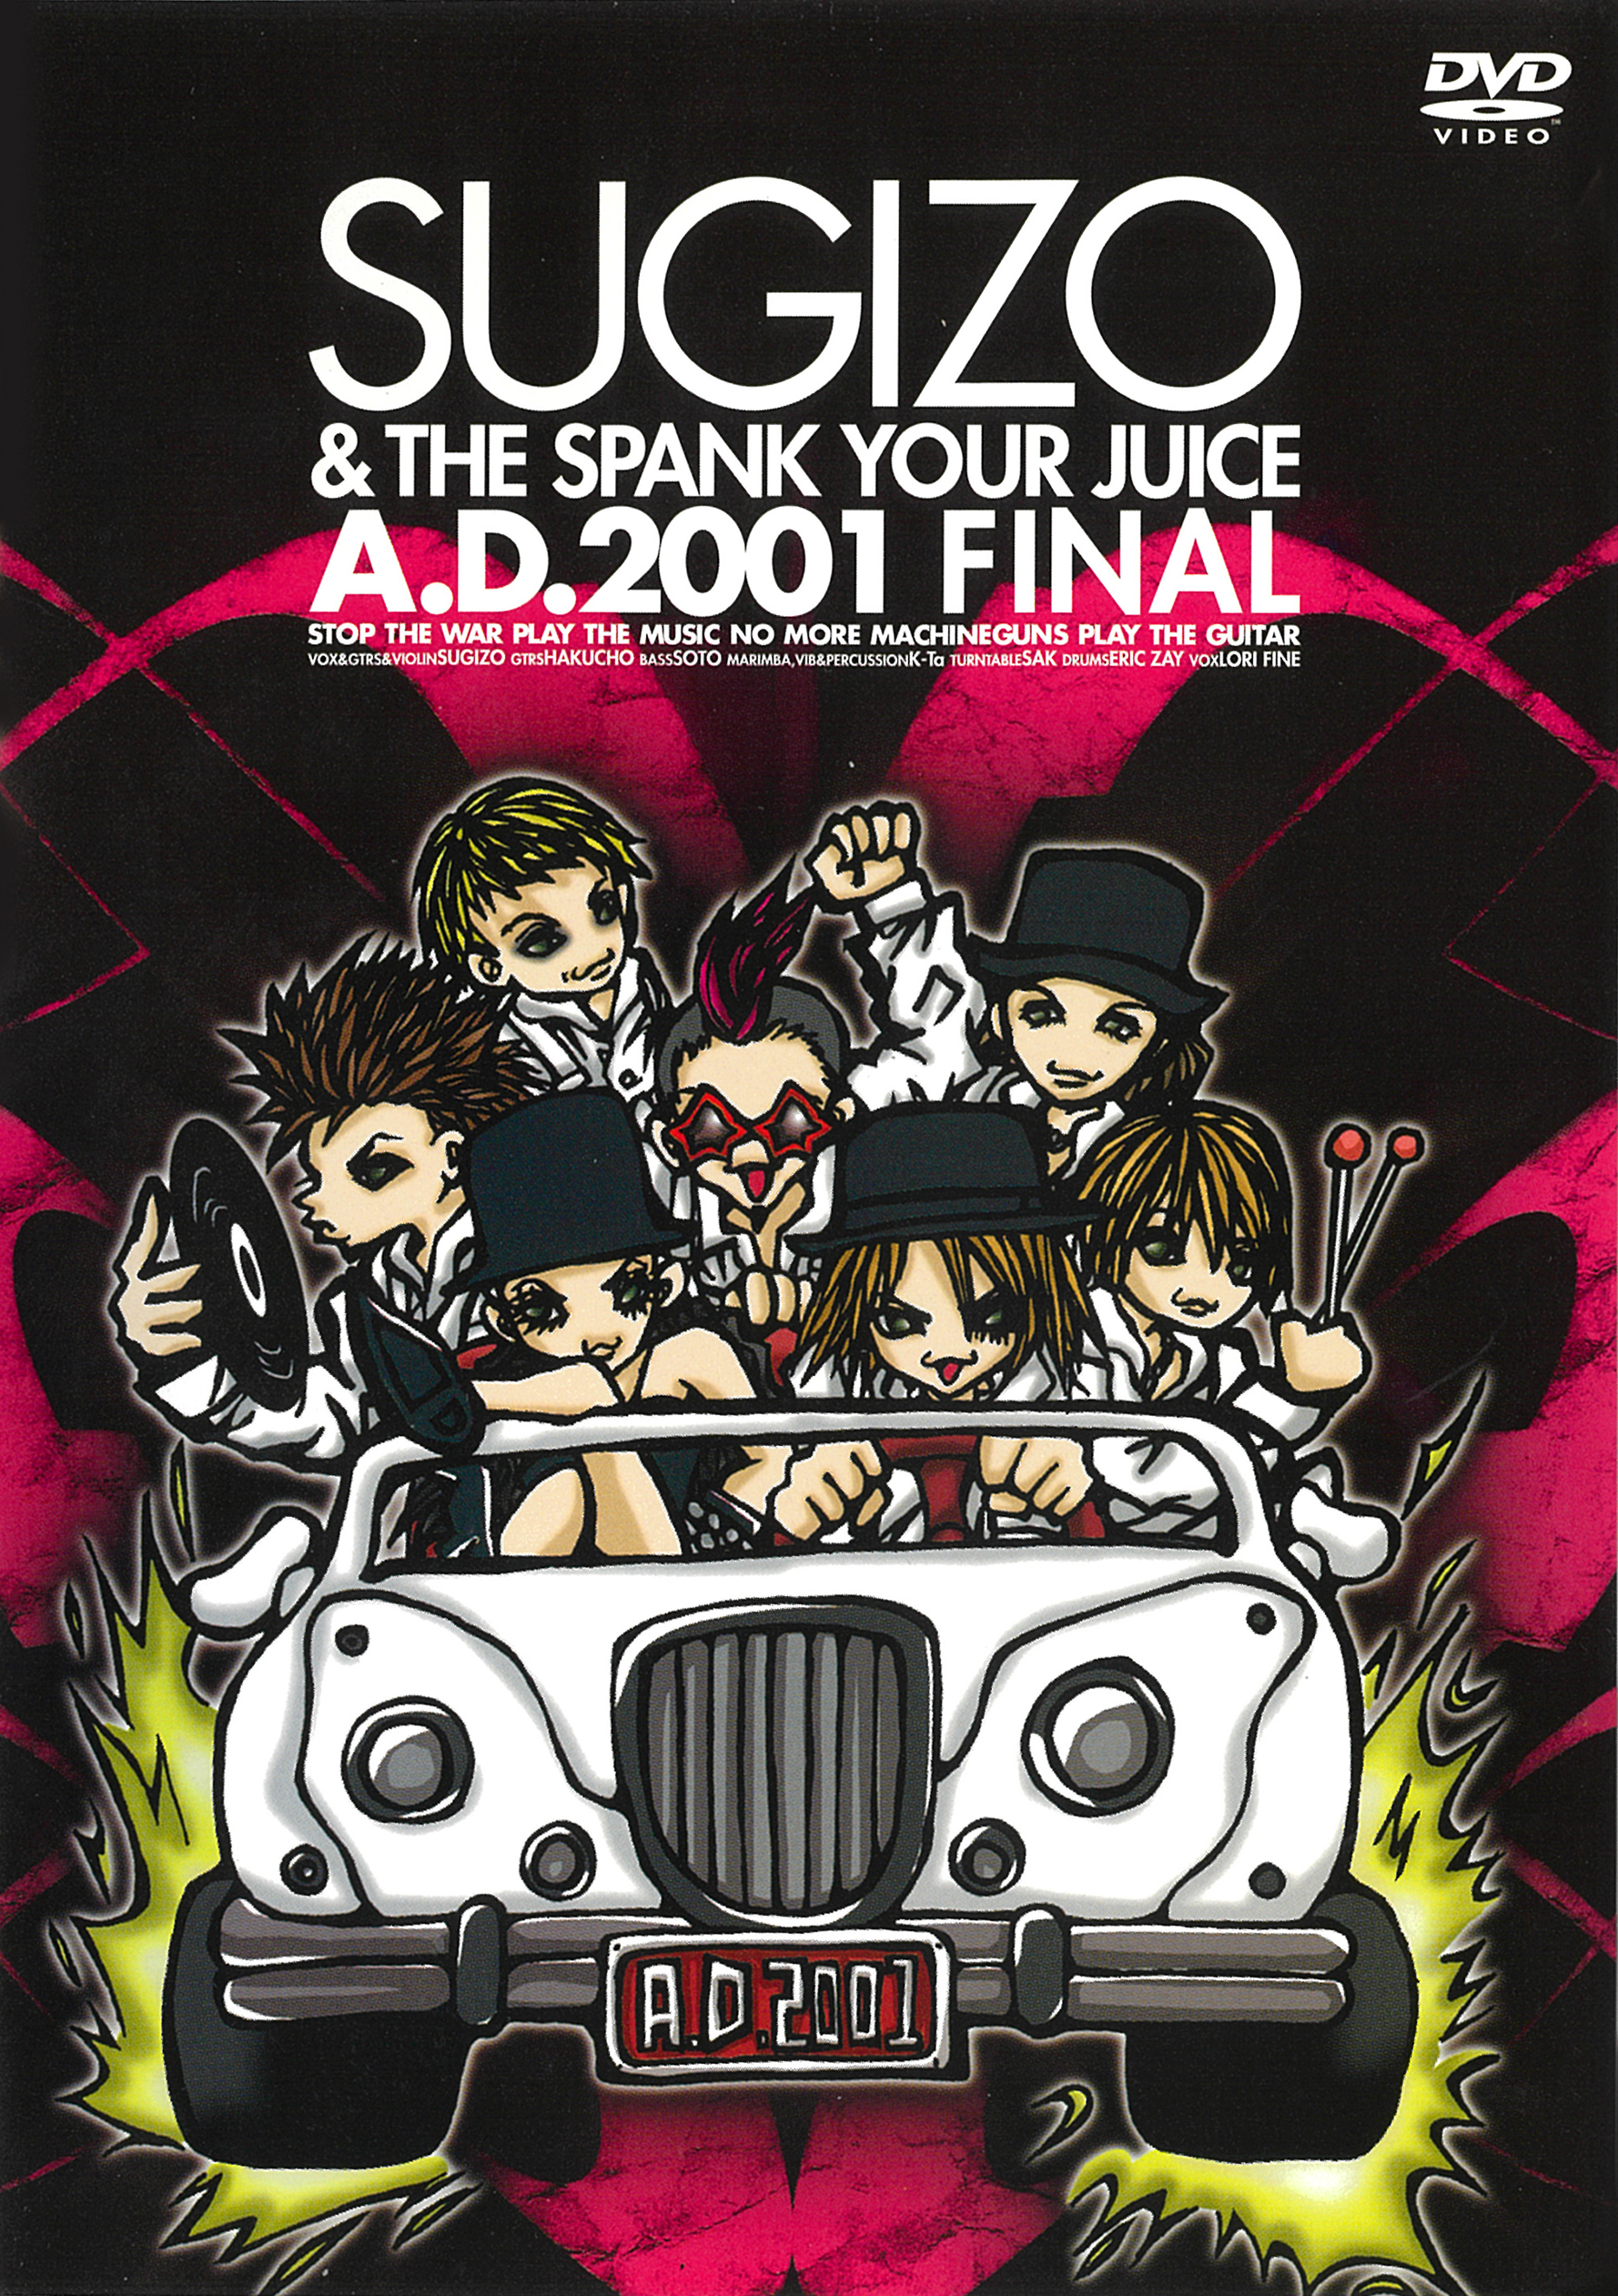 A.D.2001 FINAL SUGIZO & THE SPANK YOUR JUICE